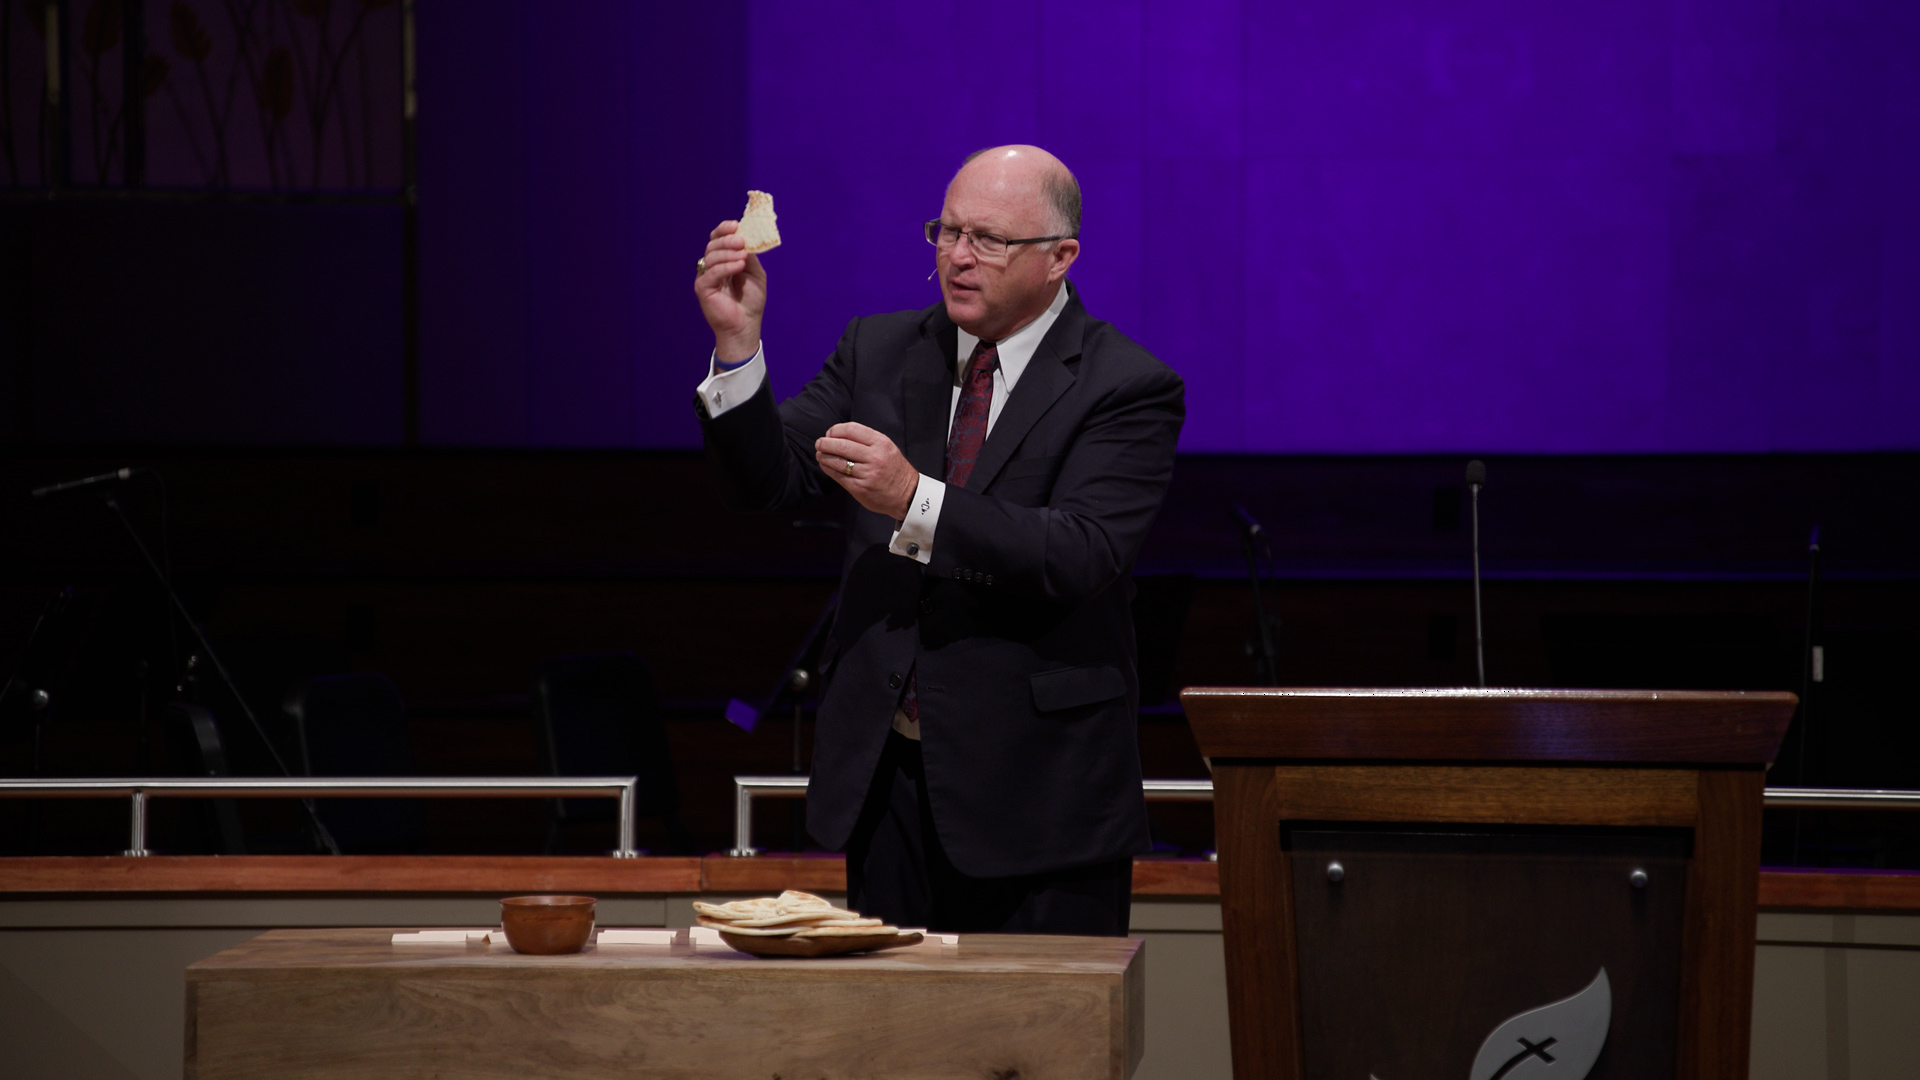 Pastor Paul Chappell: The Lord's Table